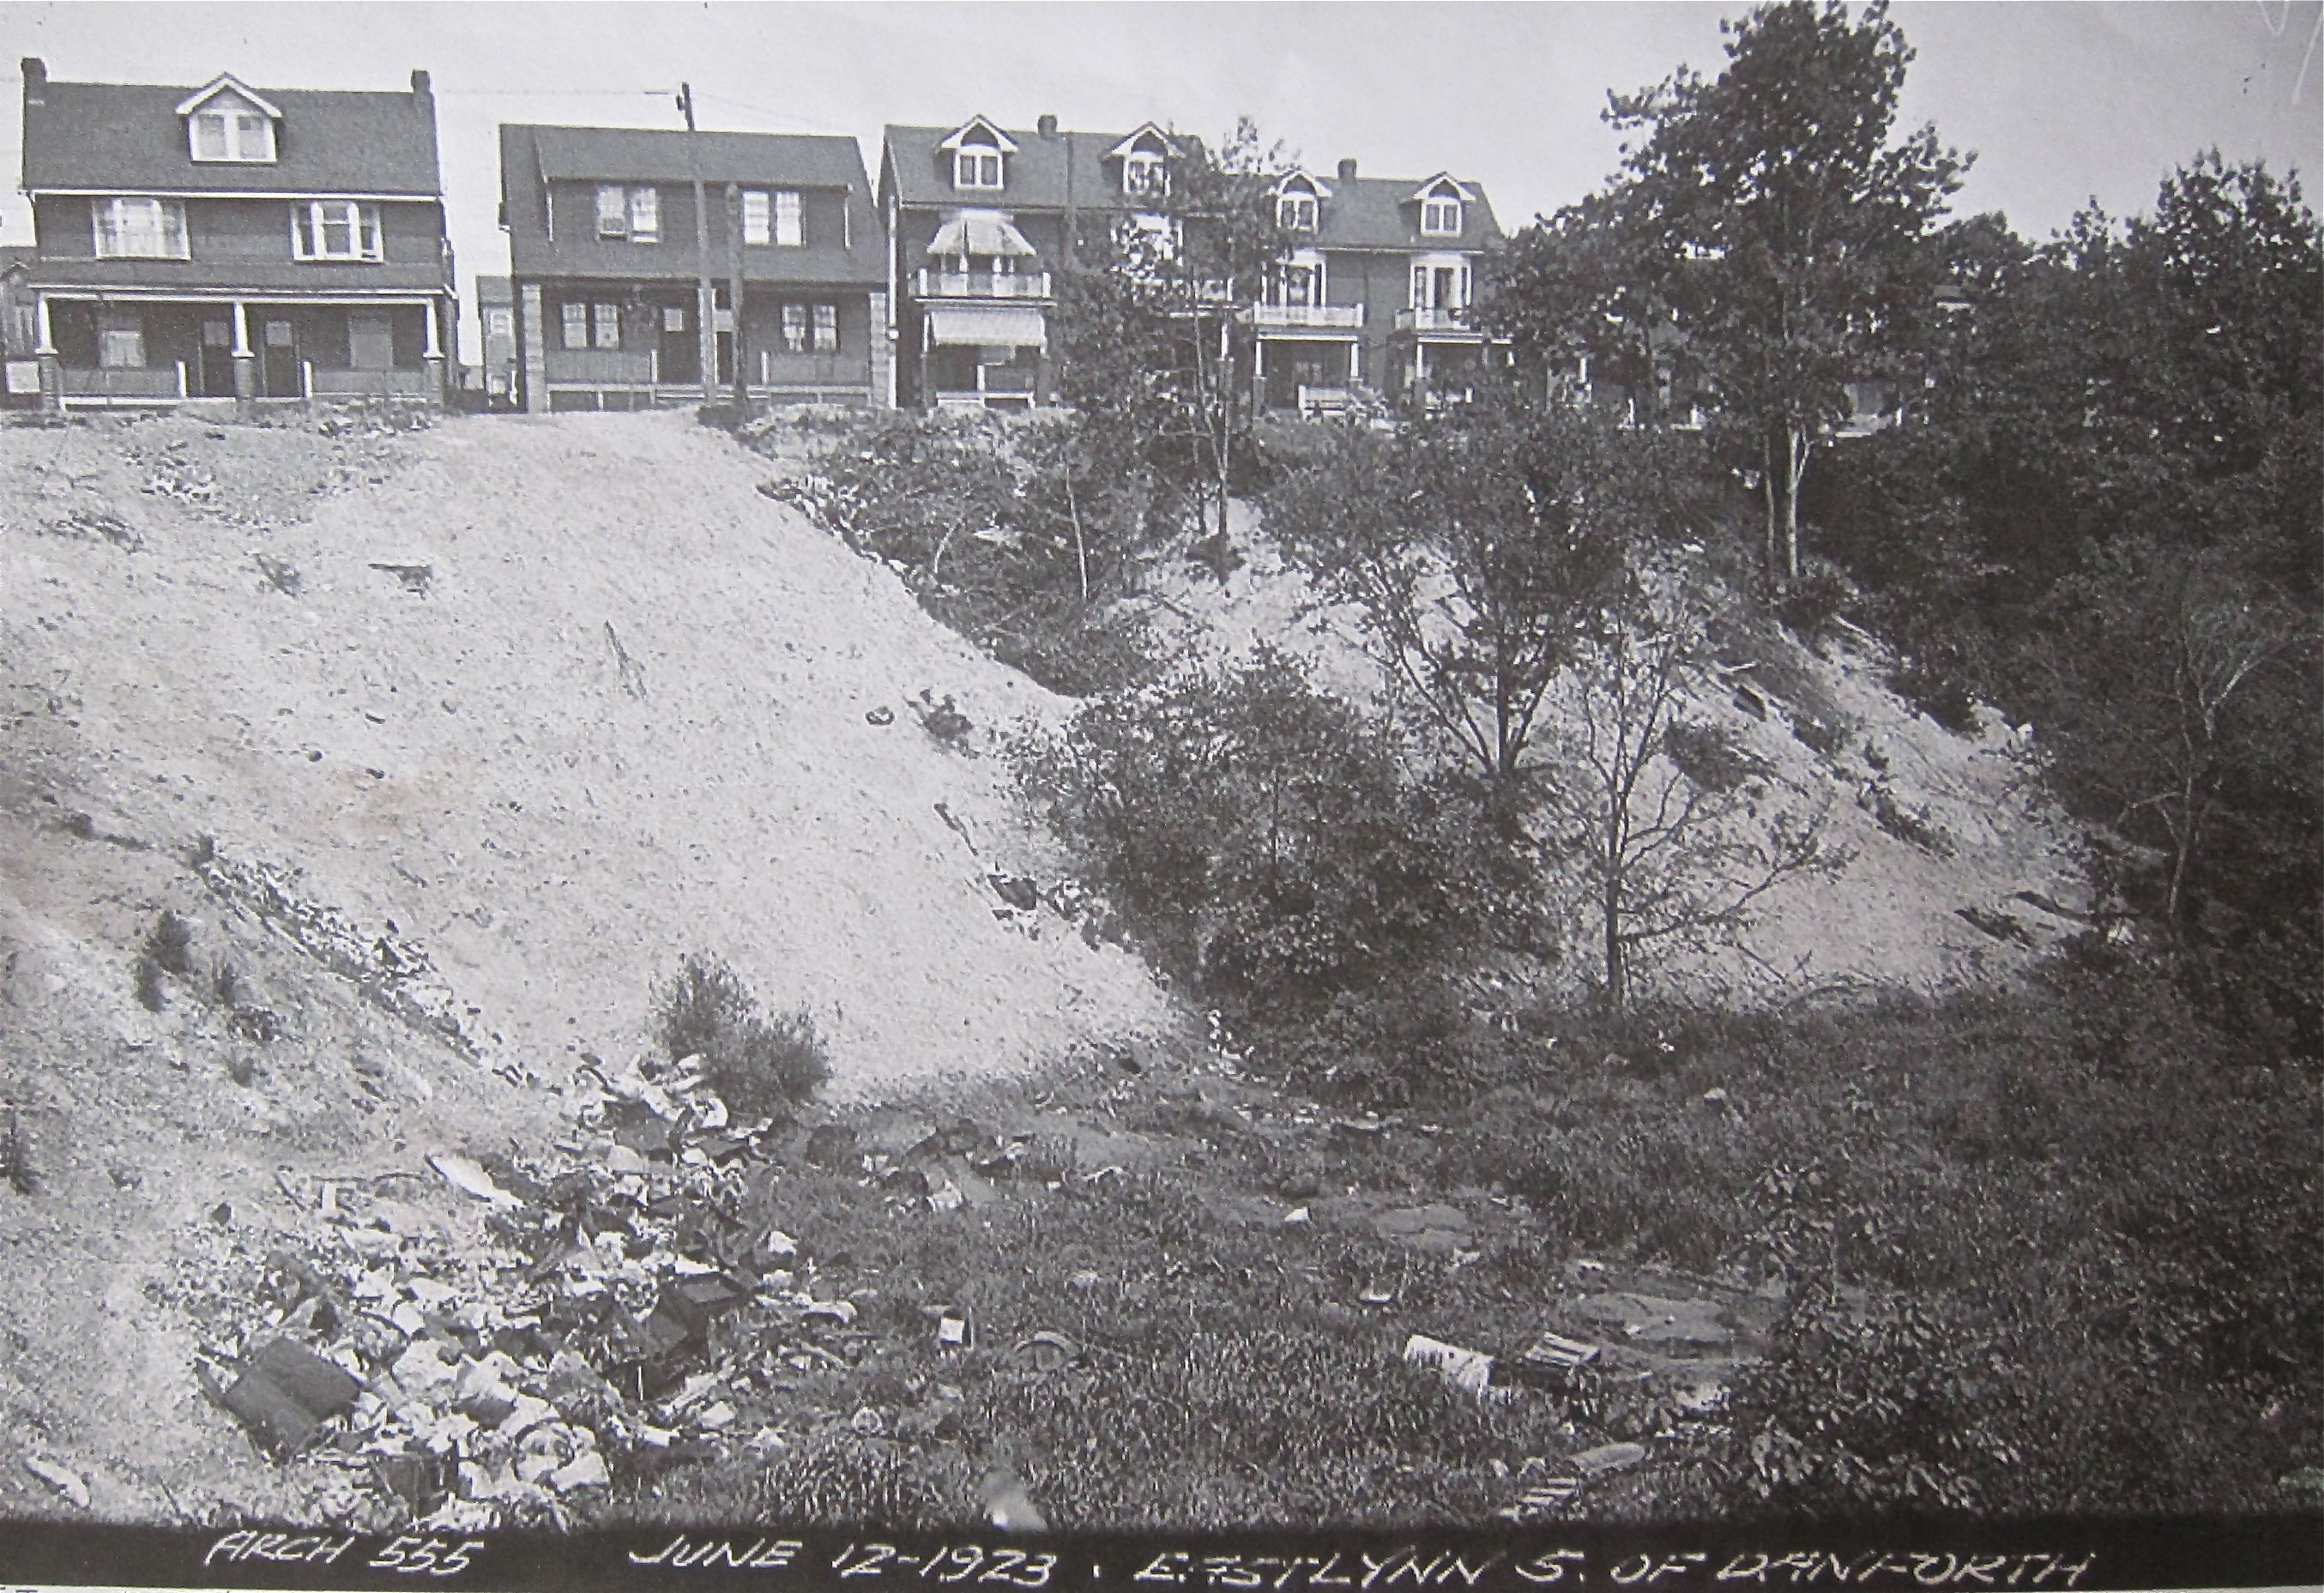 In this 1923 photo, you can see that East Lynn Park was a quite deep ravine. The creek was rerouted into a sewer and much landfill made things much shallower.